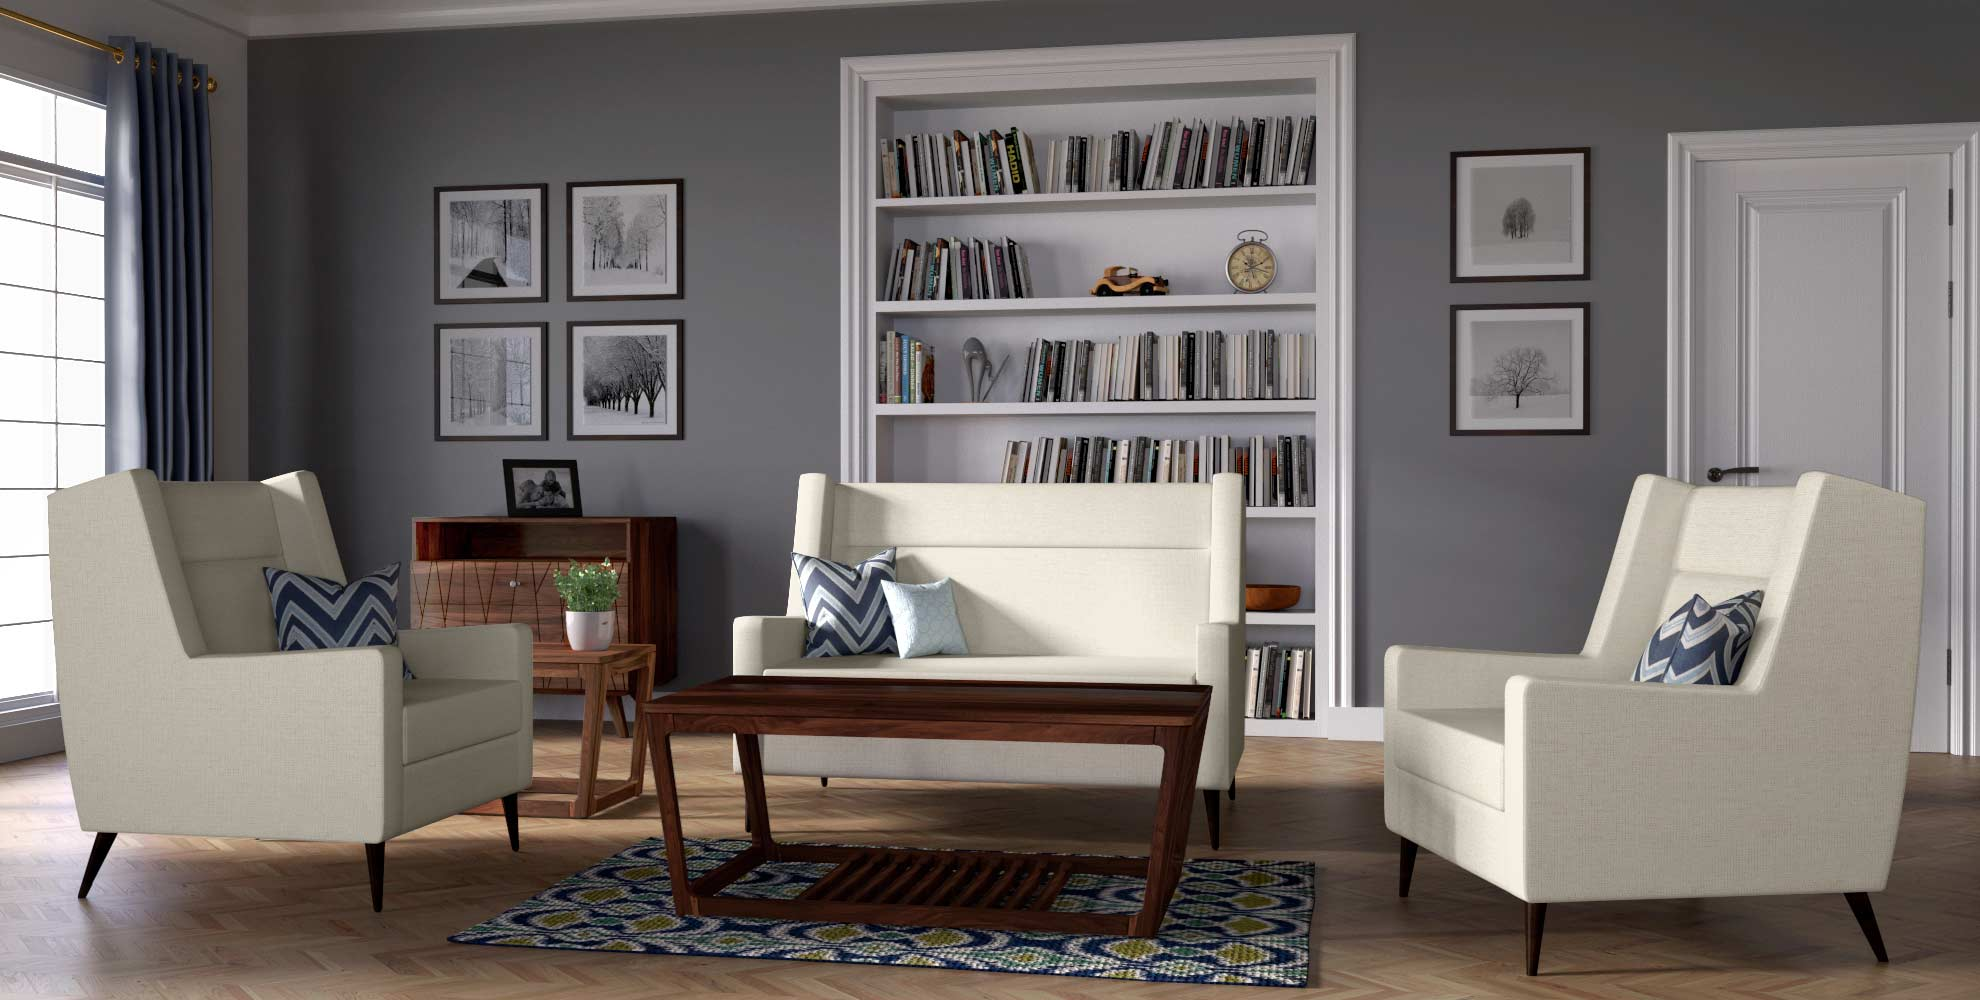 Design Interieur Interior Design 1980x1000 Full Hd Wall